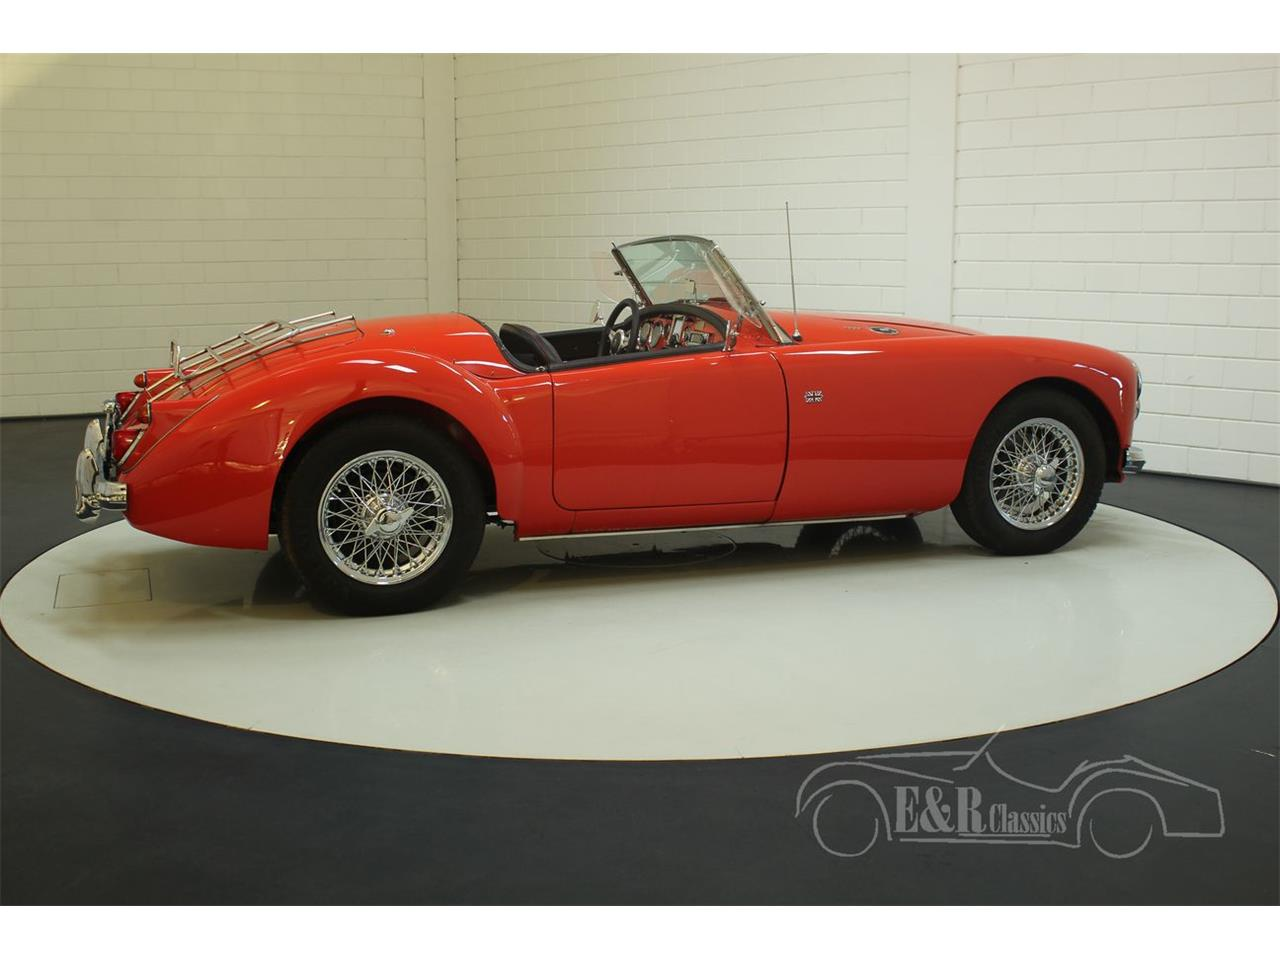 Large Picture of Classic '62 MGA located in Waalwijk noord brabant - $44,900.00 Offered by E & R Classics - Q2W8